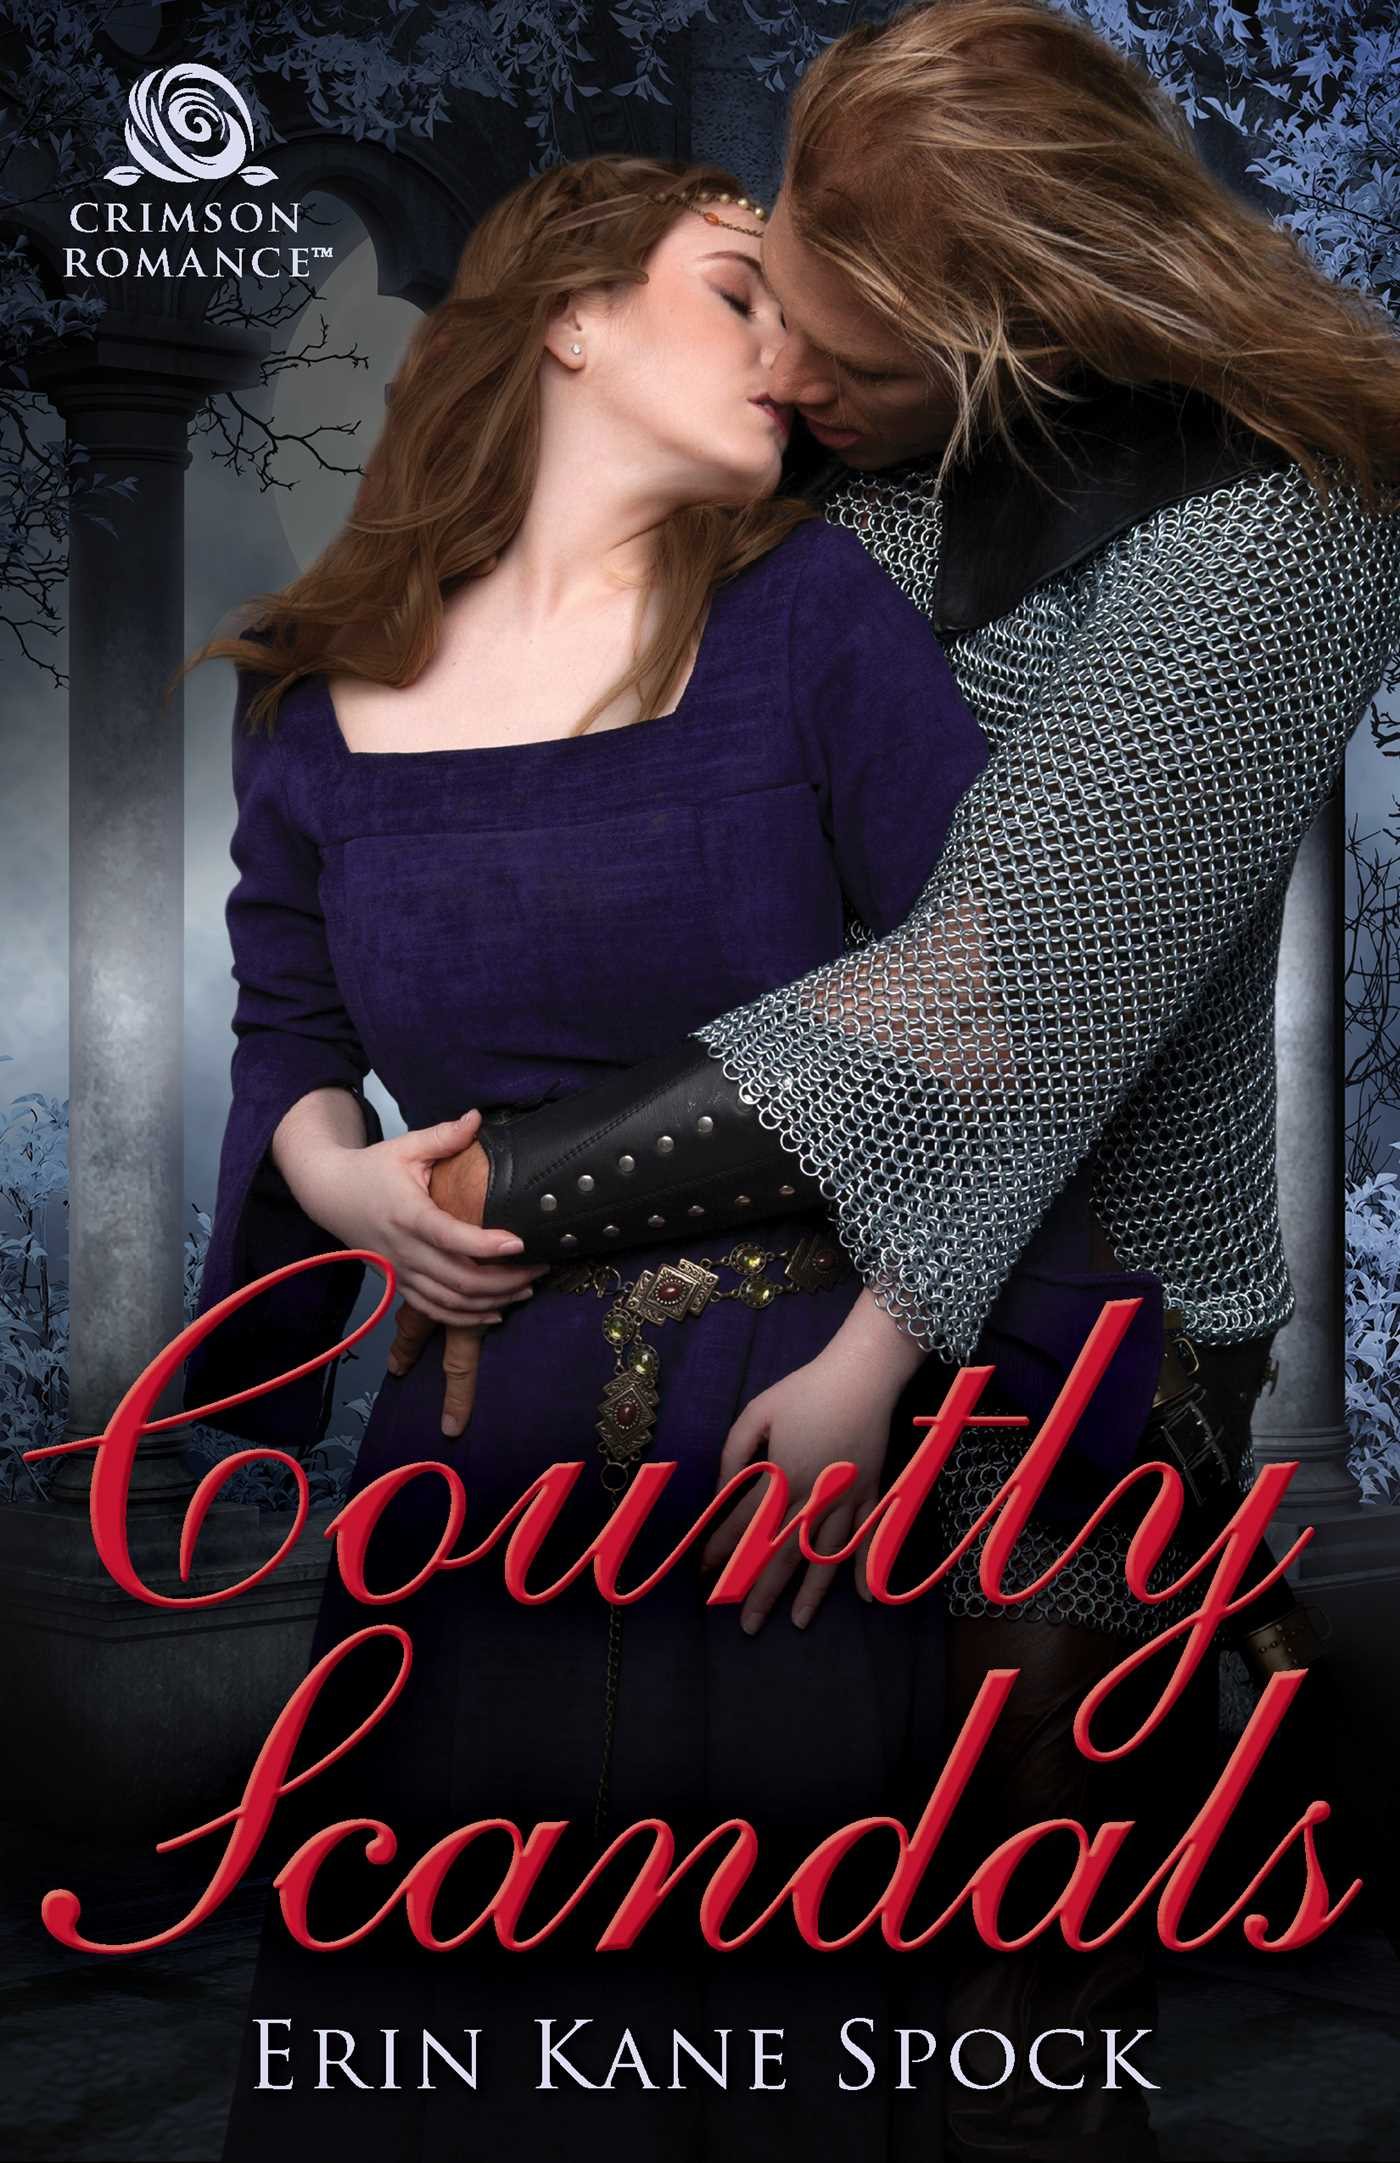 Courtly scandals 9781507208809 hr